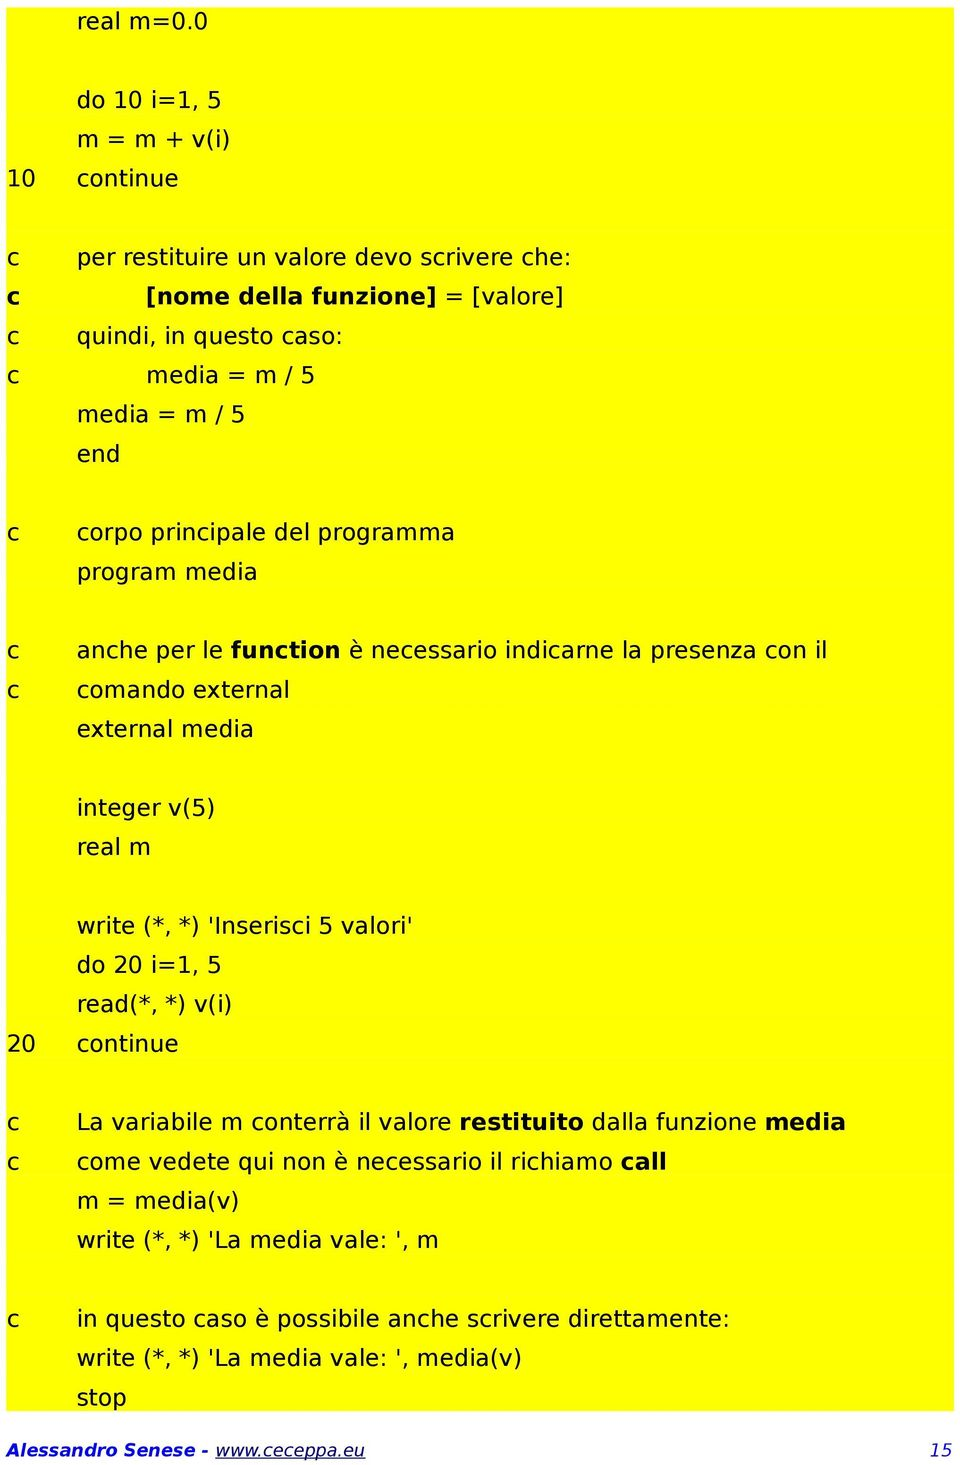 prinipale del programma program media anhe per le funtion è neessario indiarne la presenza on il omando external external media integer v(5) real m write (*, *) 'Inserisi